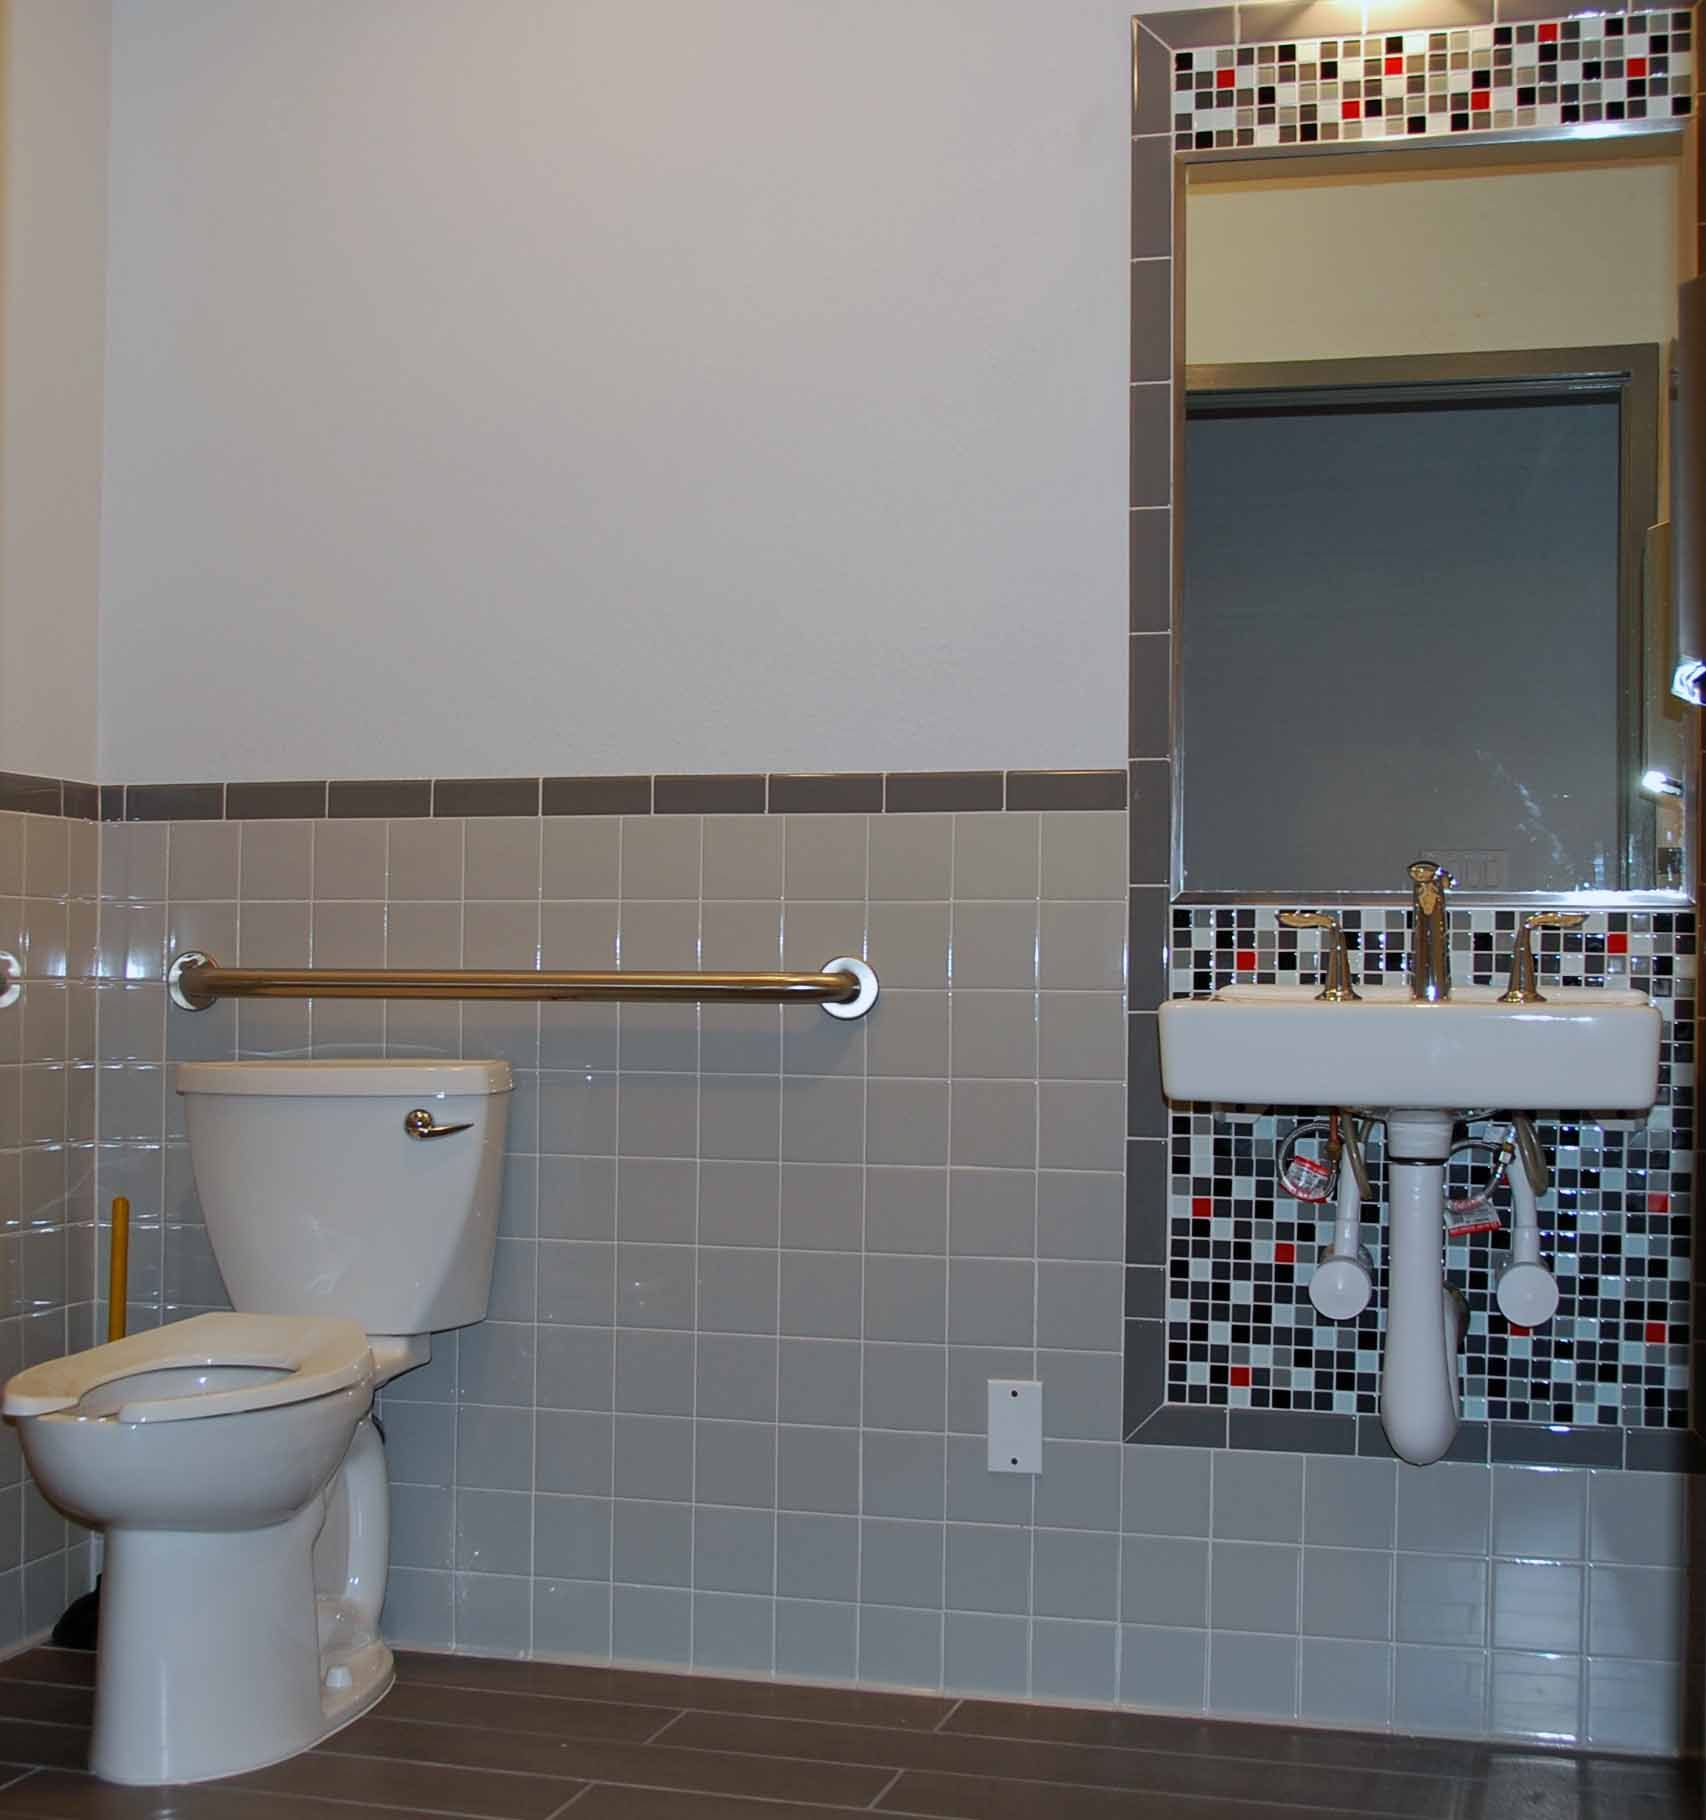 Cheap & Cheerful Tile Design For An ADA Bathroom